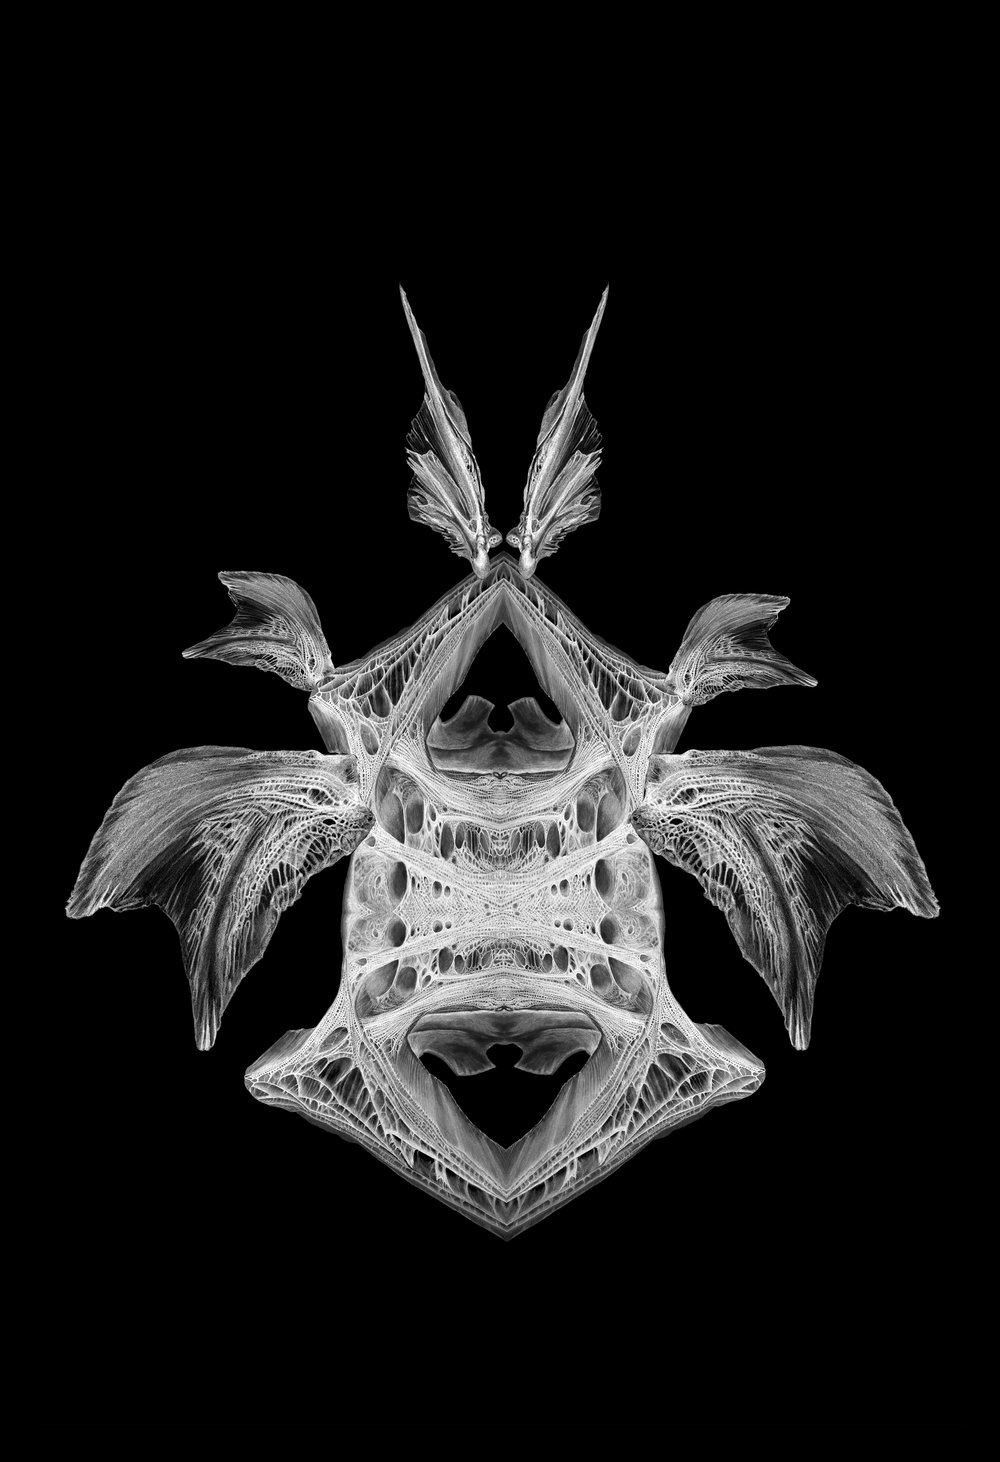 X-Ray of Diaboli Minimus.  2016 Digital collage from original drawings.         Courtesy of the artist Price: $600